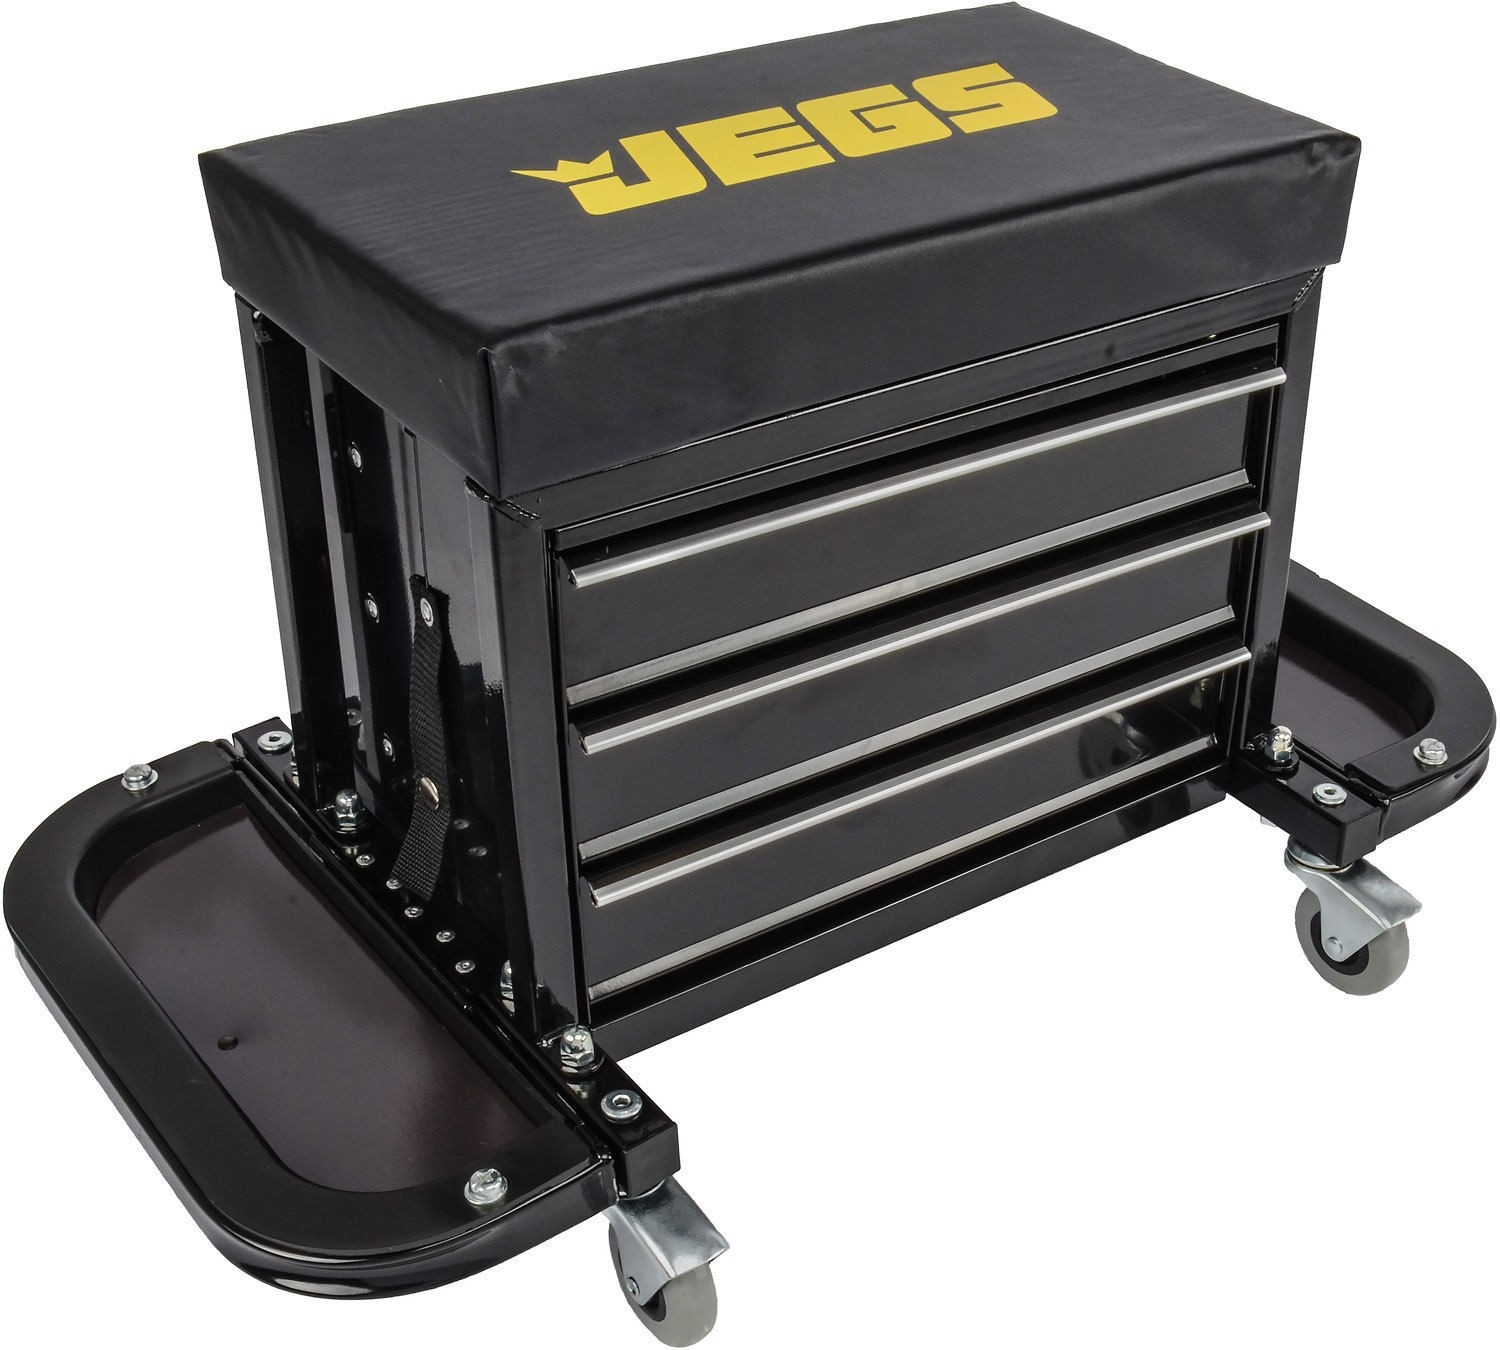 "JEGS 3-Drawer Mechanics Roller Seat Toolbox 26-3/8"" x 14-1/8"" x 16"" Overall"